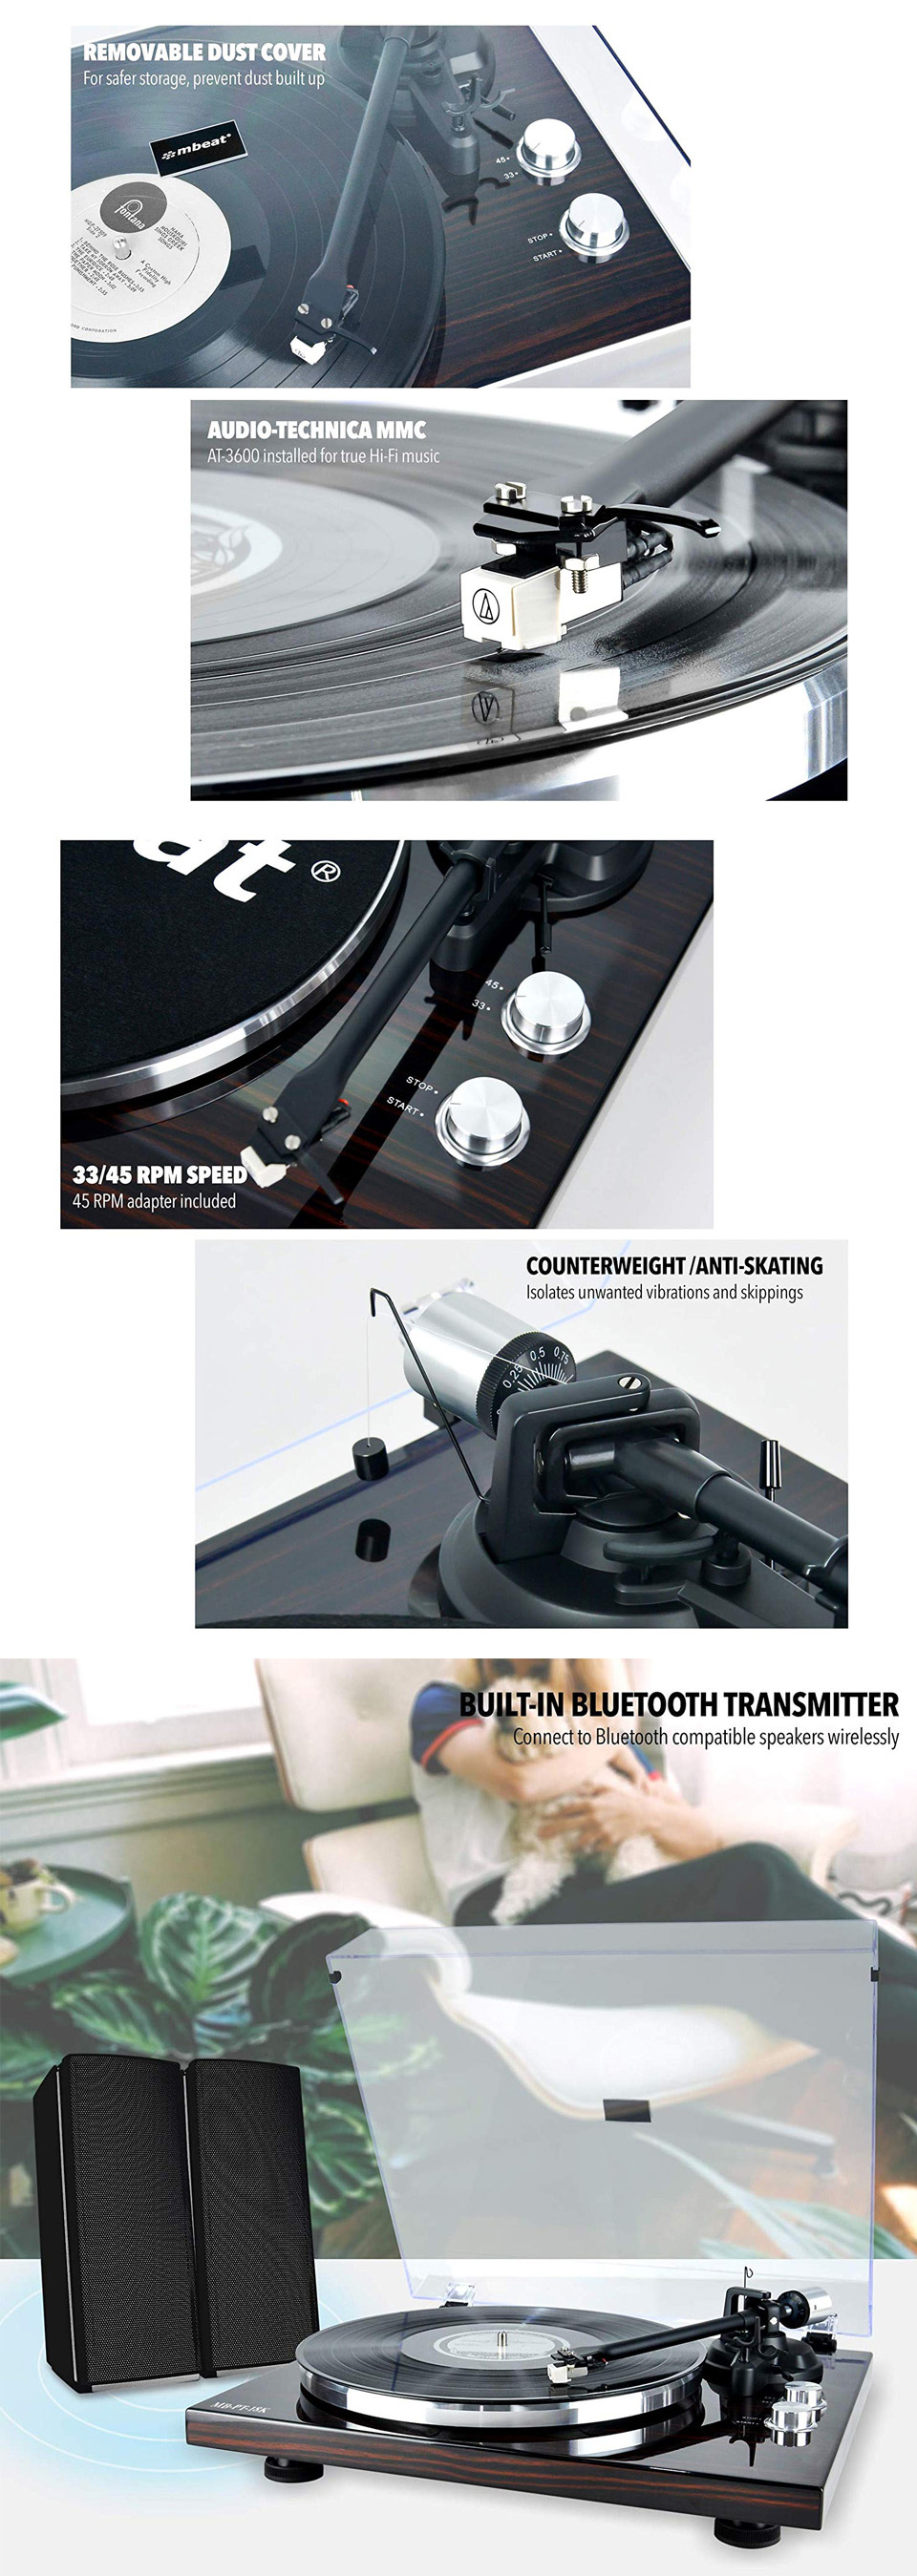 mbeat PT-18K Bluetooth Turntable Record Player features